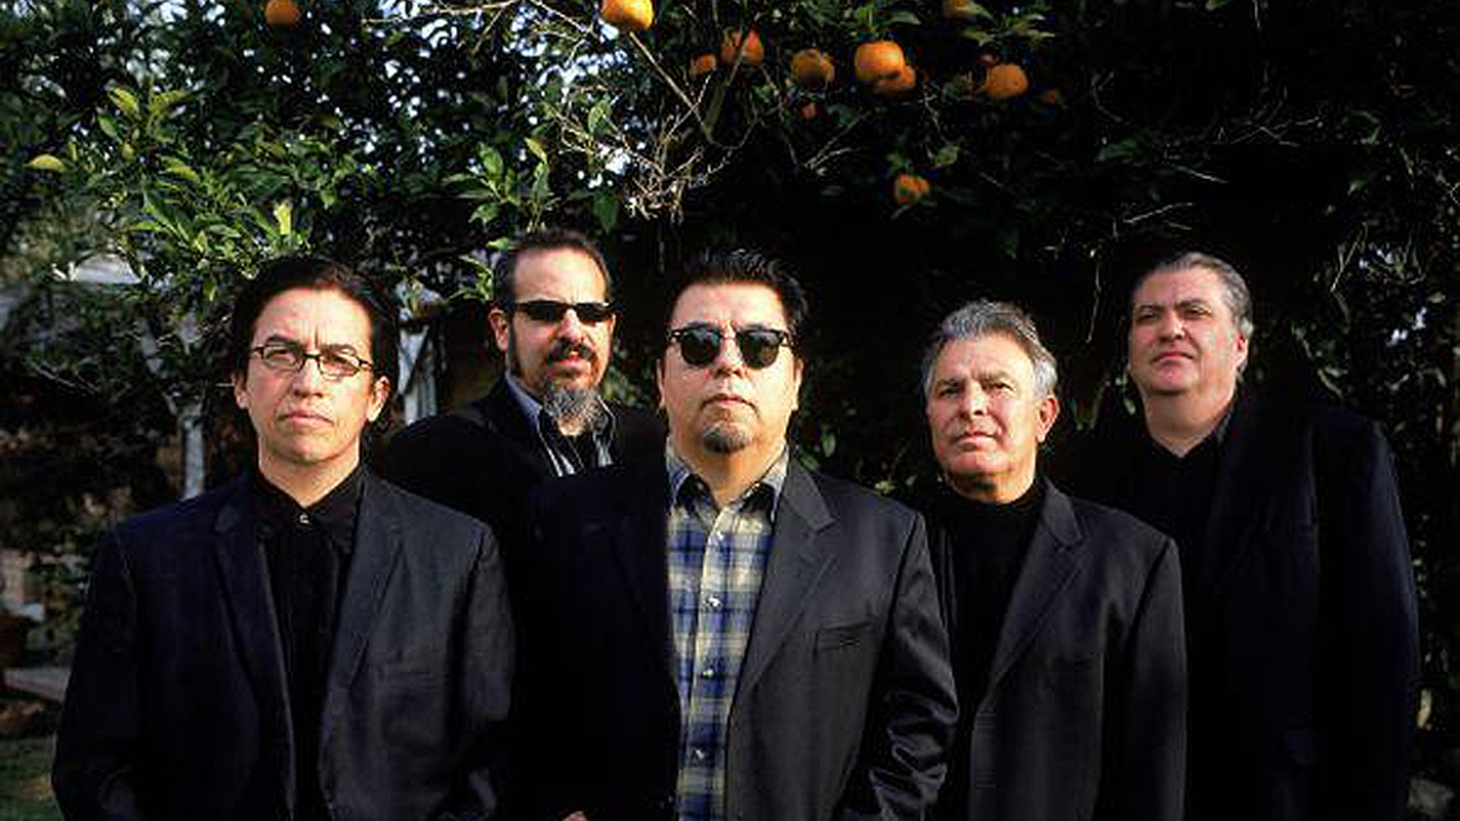 East L.A.'s Los Lobos celebrate the 20th anniversary of their recording Kiko by performing it in its entirety...